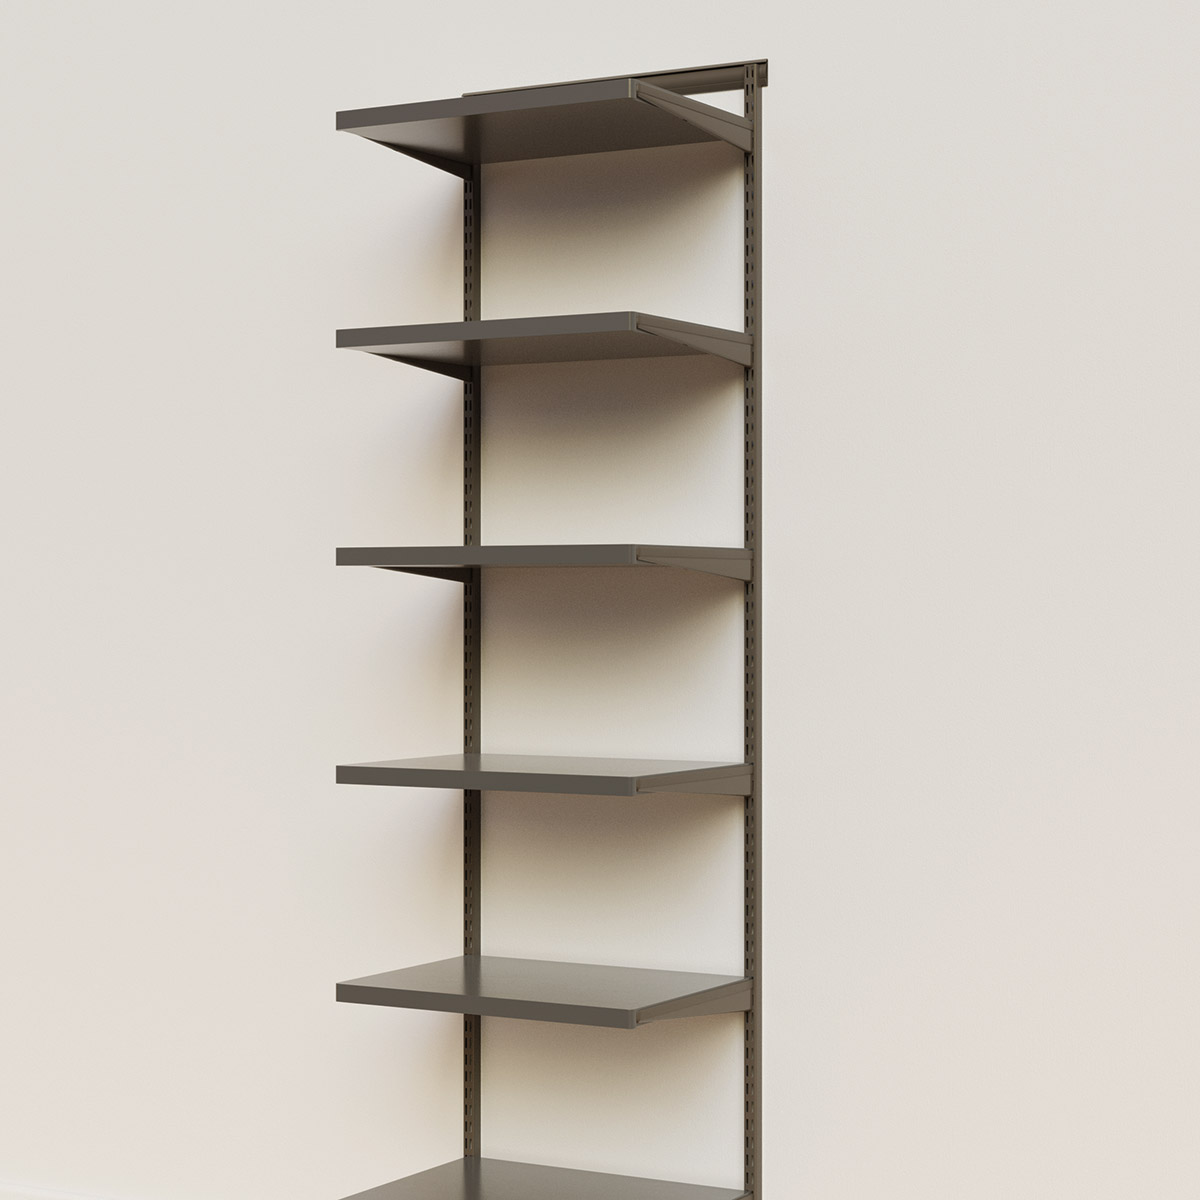 Elfa Décor 2' Graphite & Grey Basic Shelving Units for Anywhere